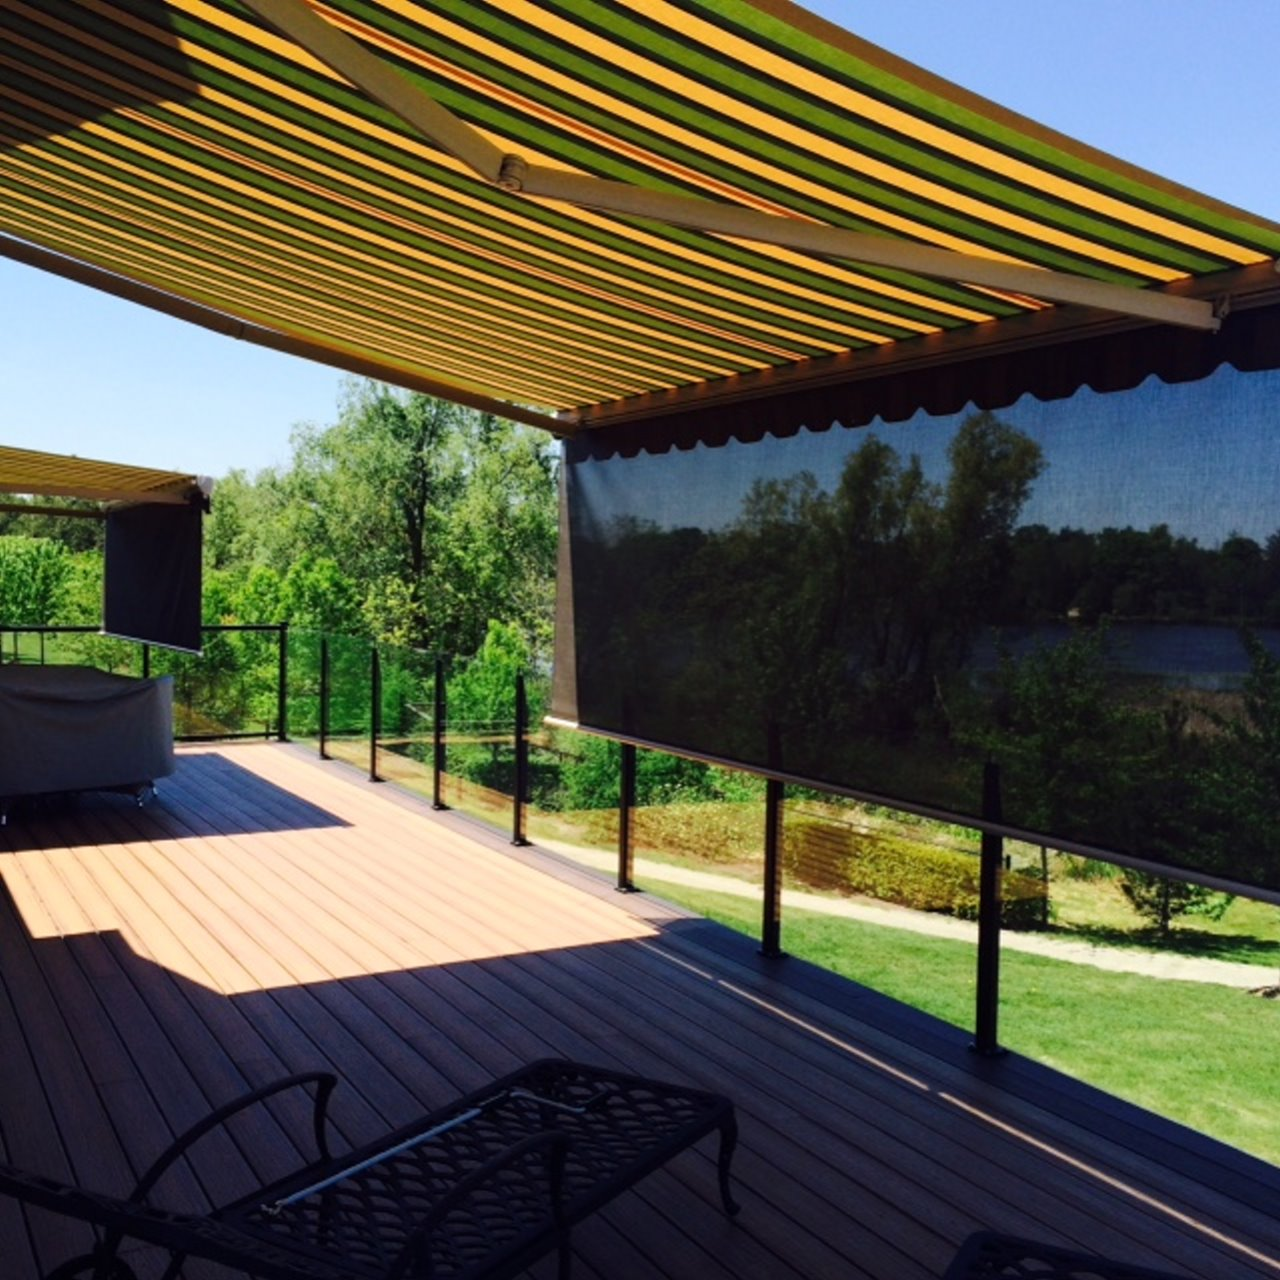 Retractable & Permanent Awnings: Fabric Awnings and Patio ...